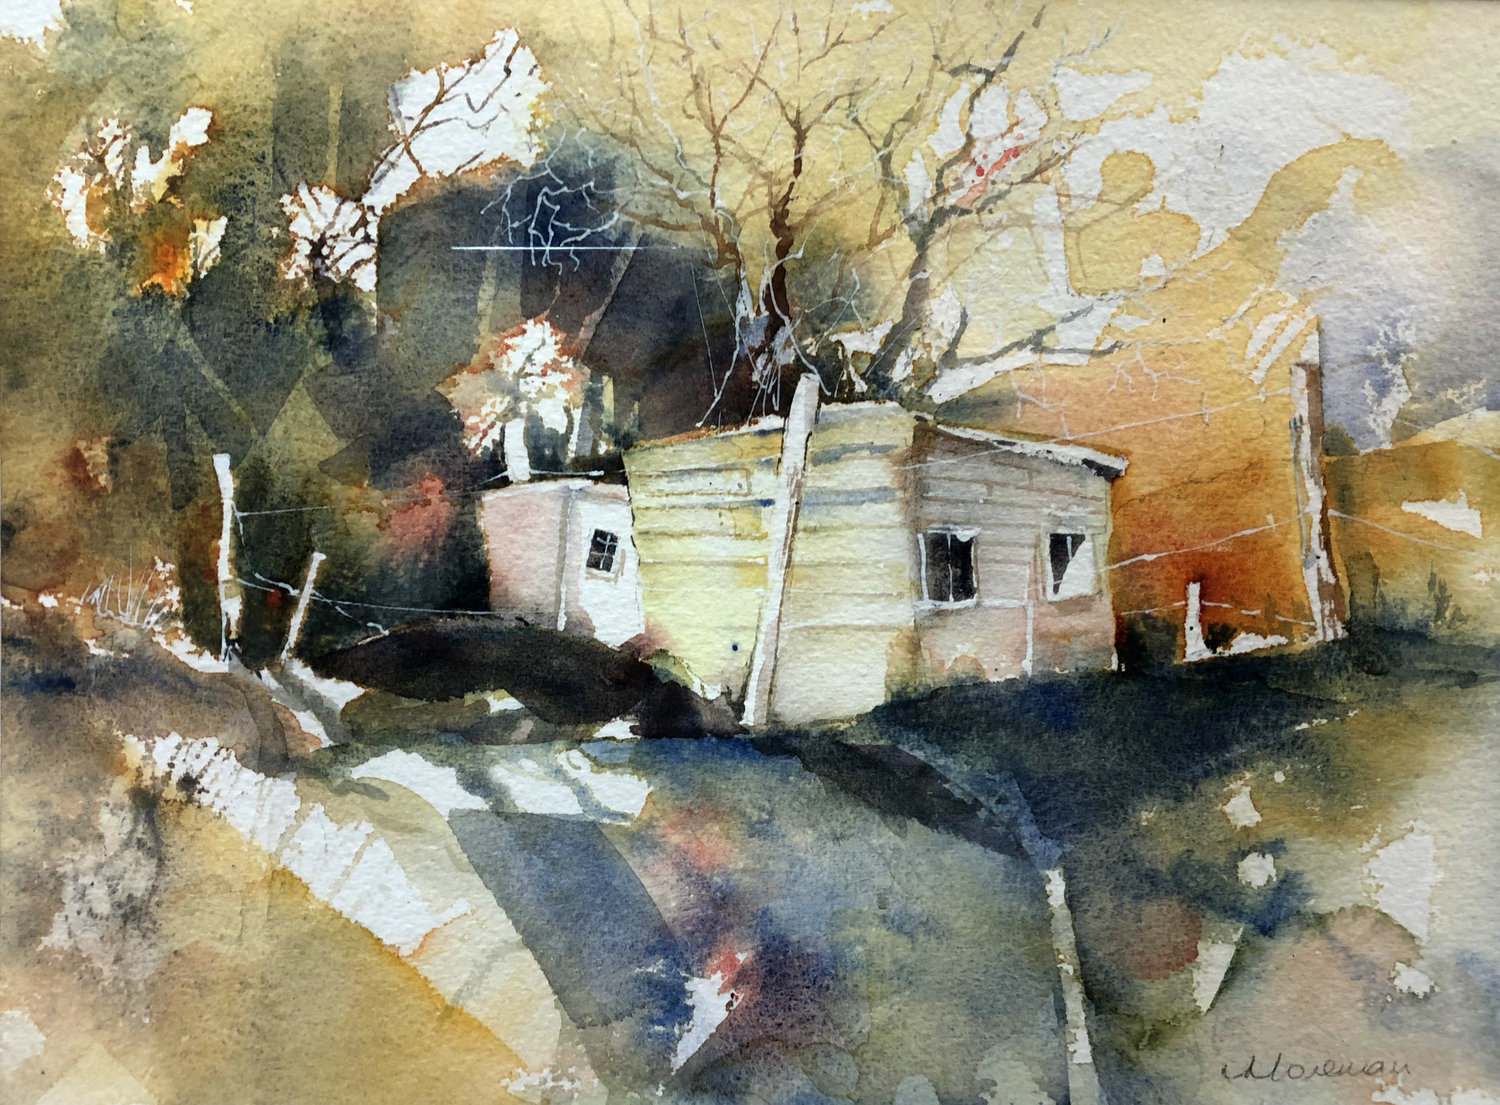 'The Yellow Shed', Val Morsman, Watercolour on paper, 24 x 31 x 1.5 cm